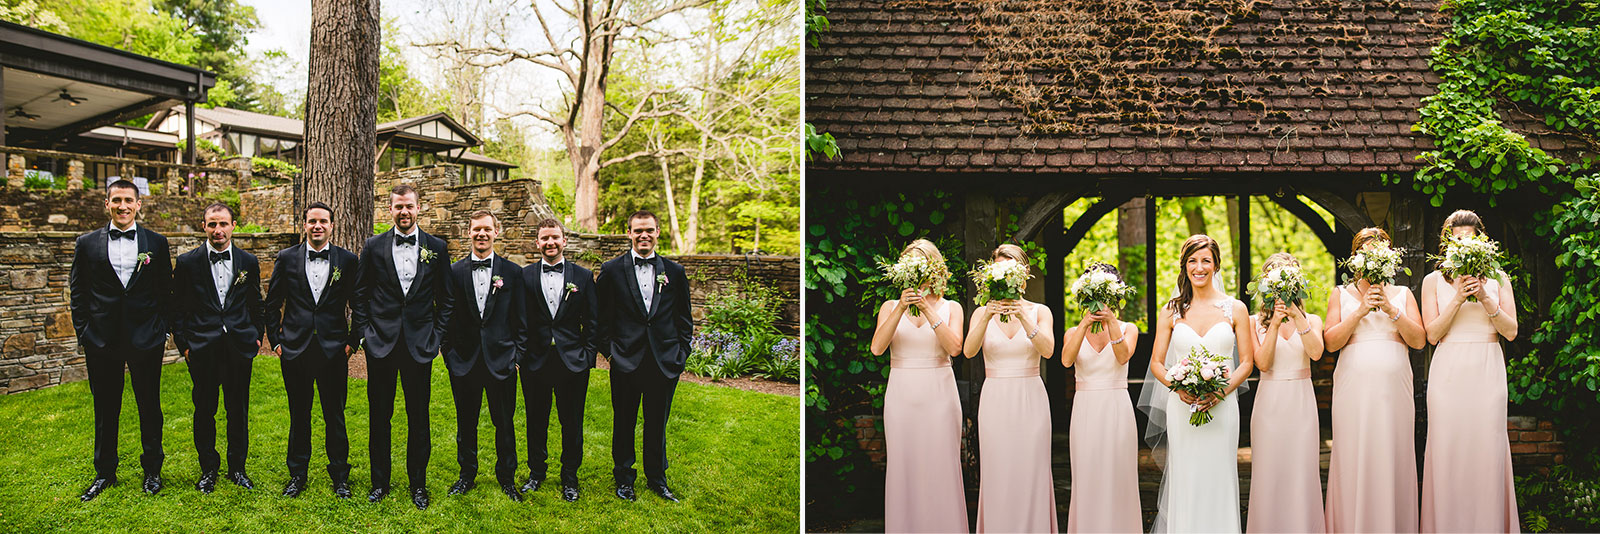 31 photographing bridal parties - Club of Hillbrook Wedding // Jenna + Ben